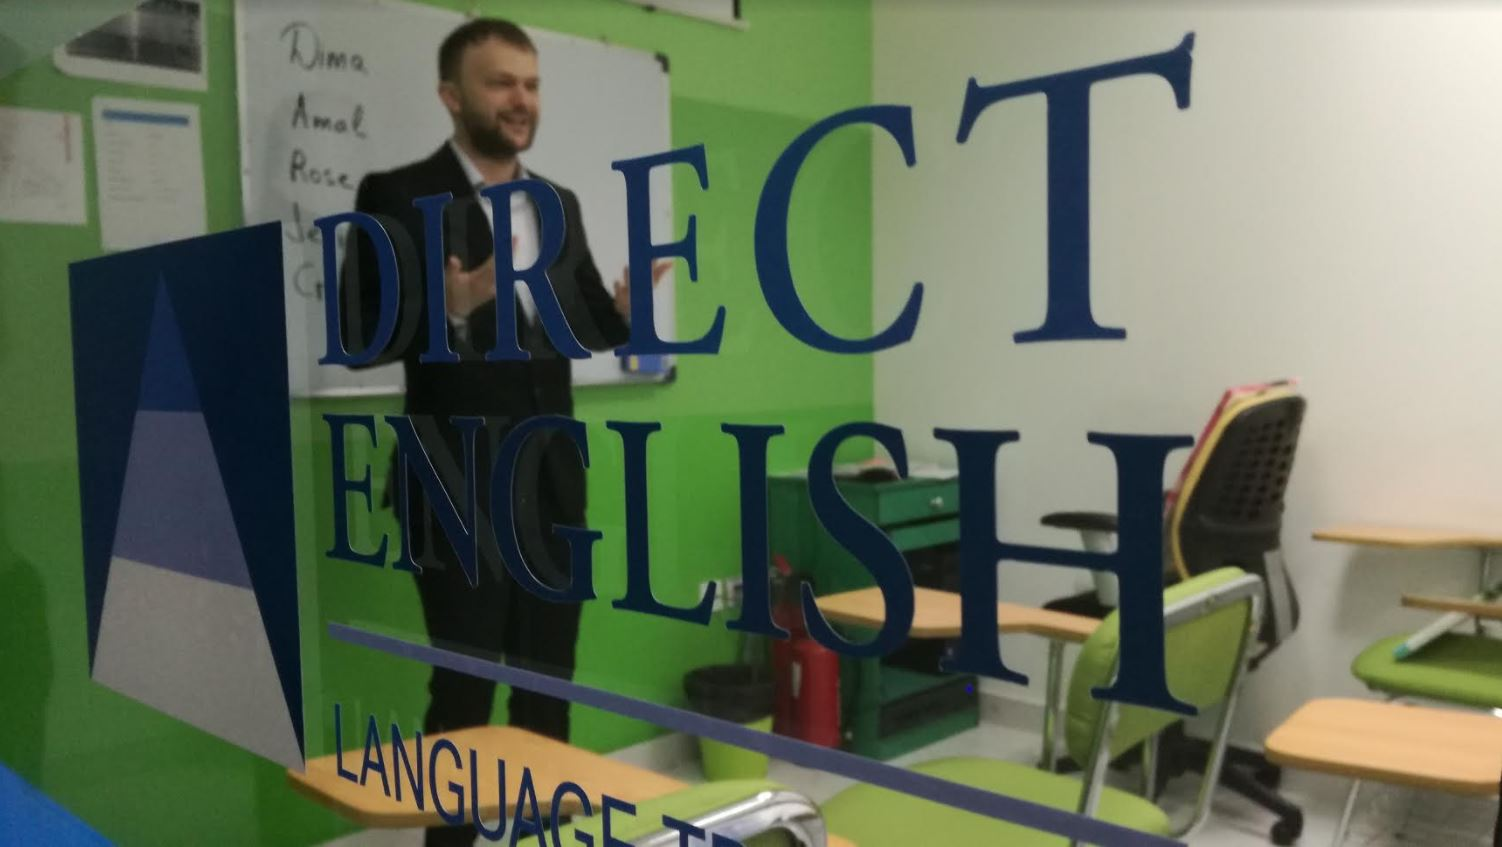 english training business franchise